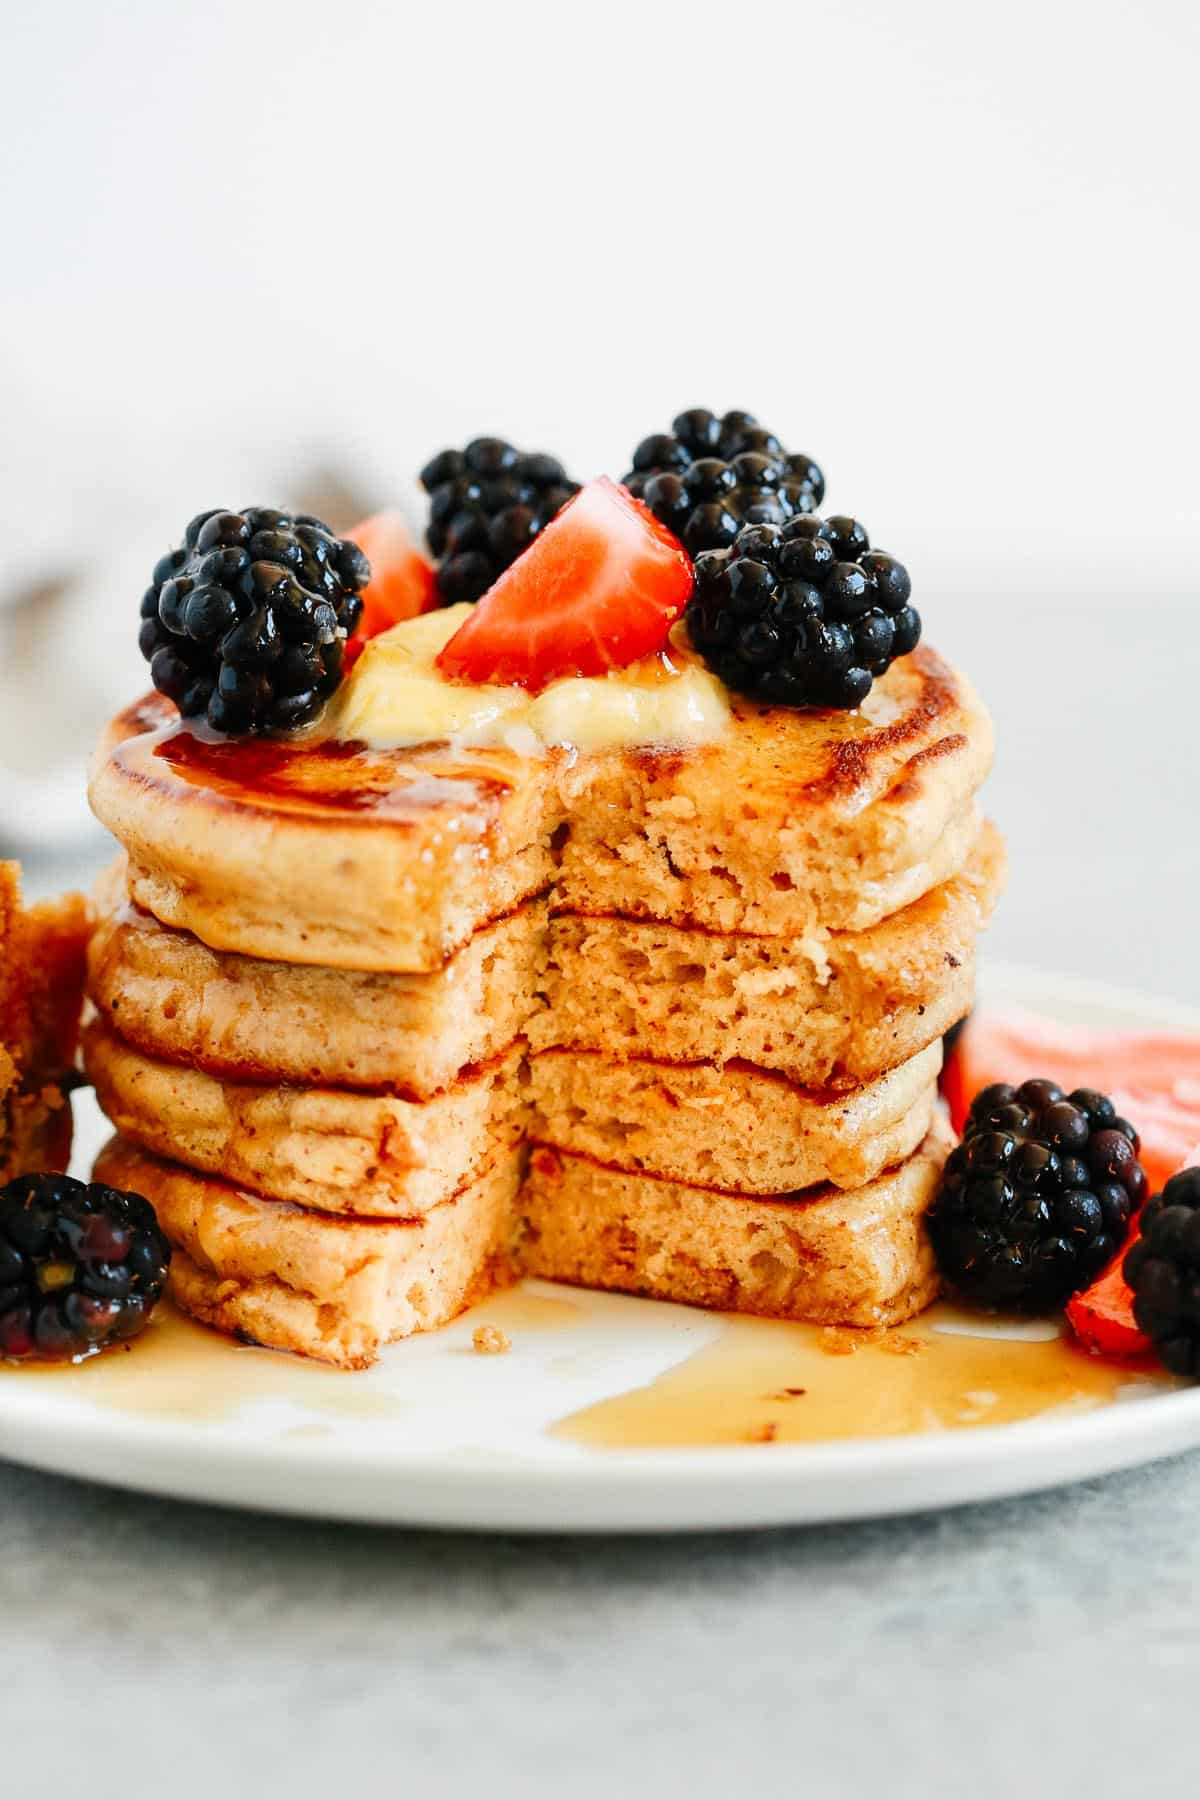 stack of peanut butter gluten free pancakes with berries that's been cut into